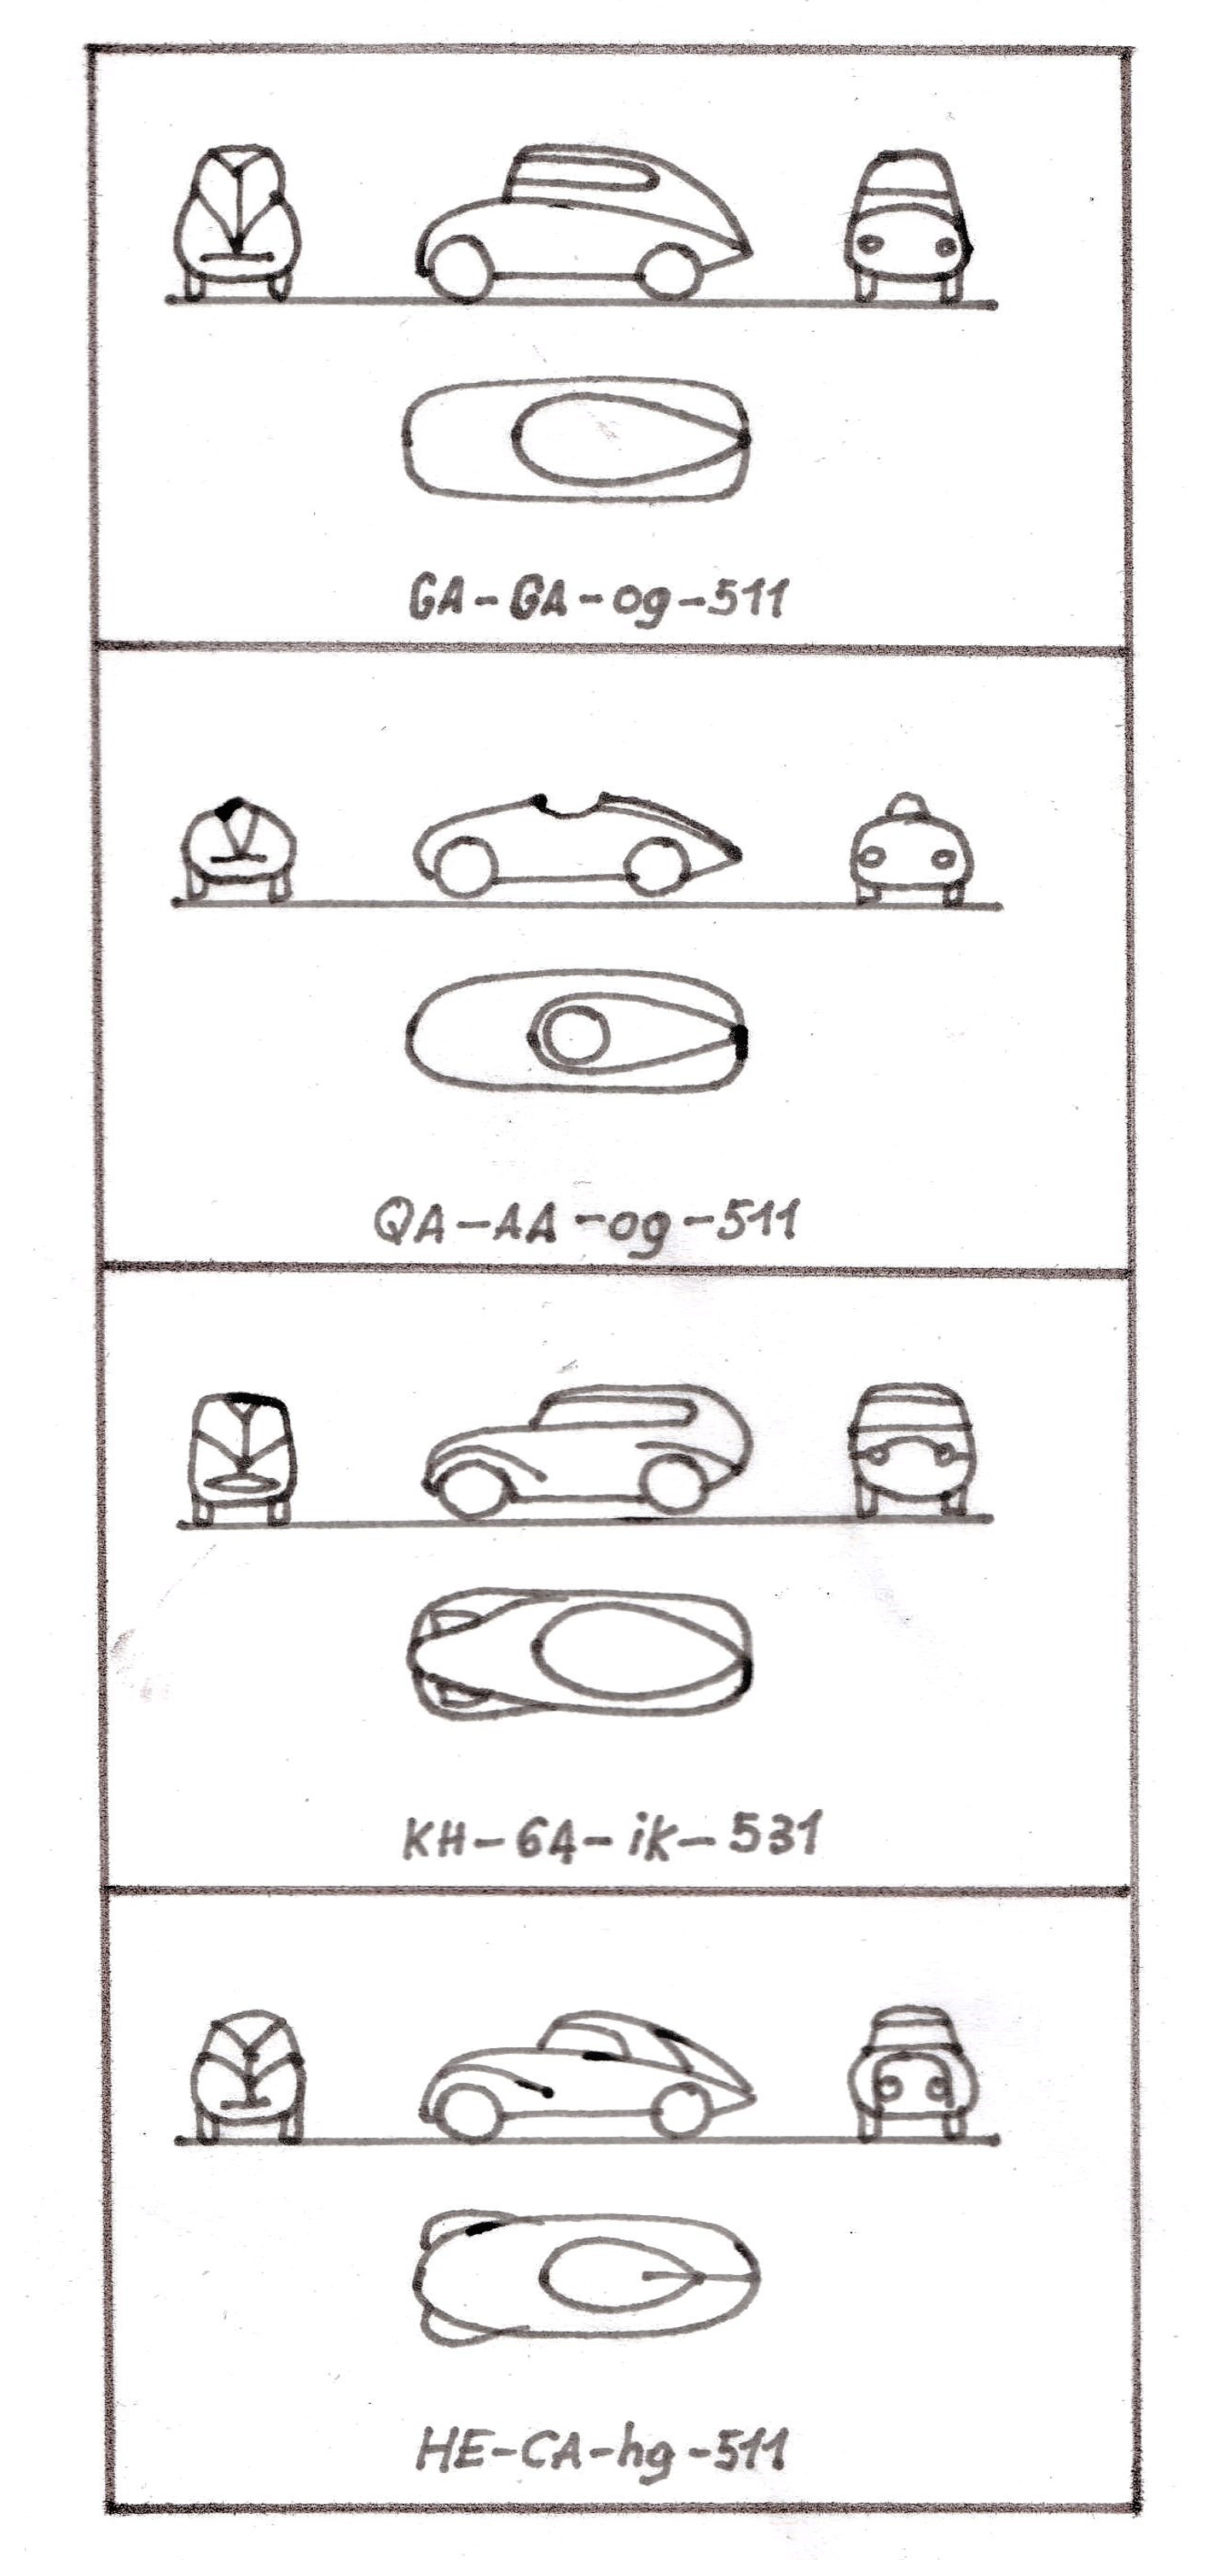 The principles of Paul Jaray's code declined for each type of car